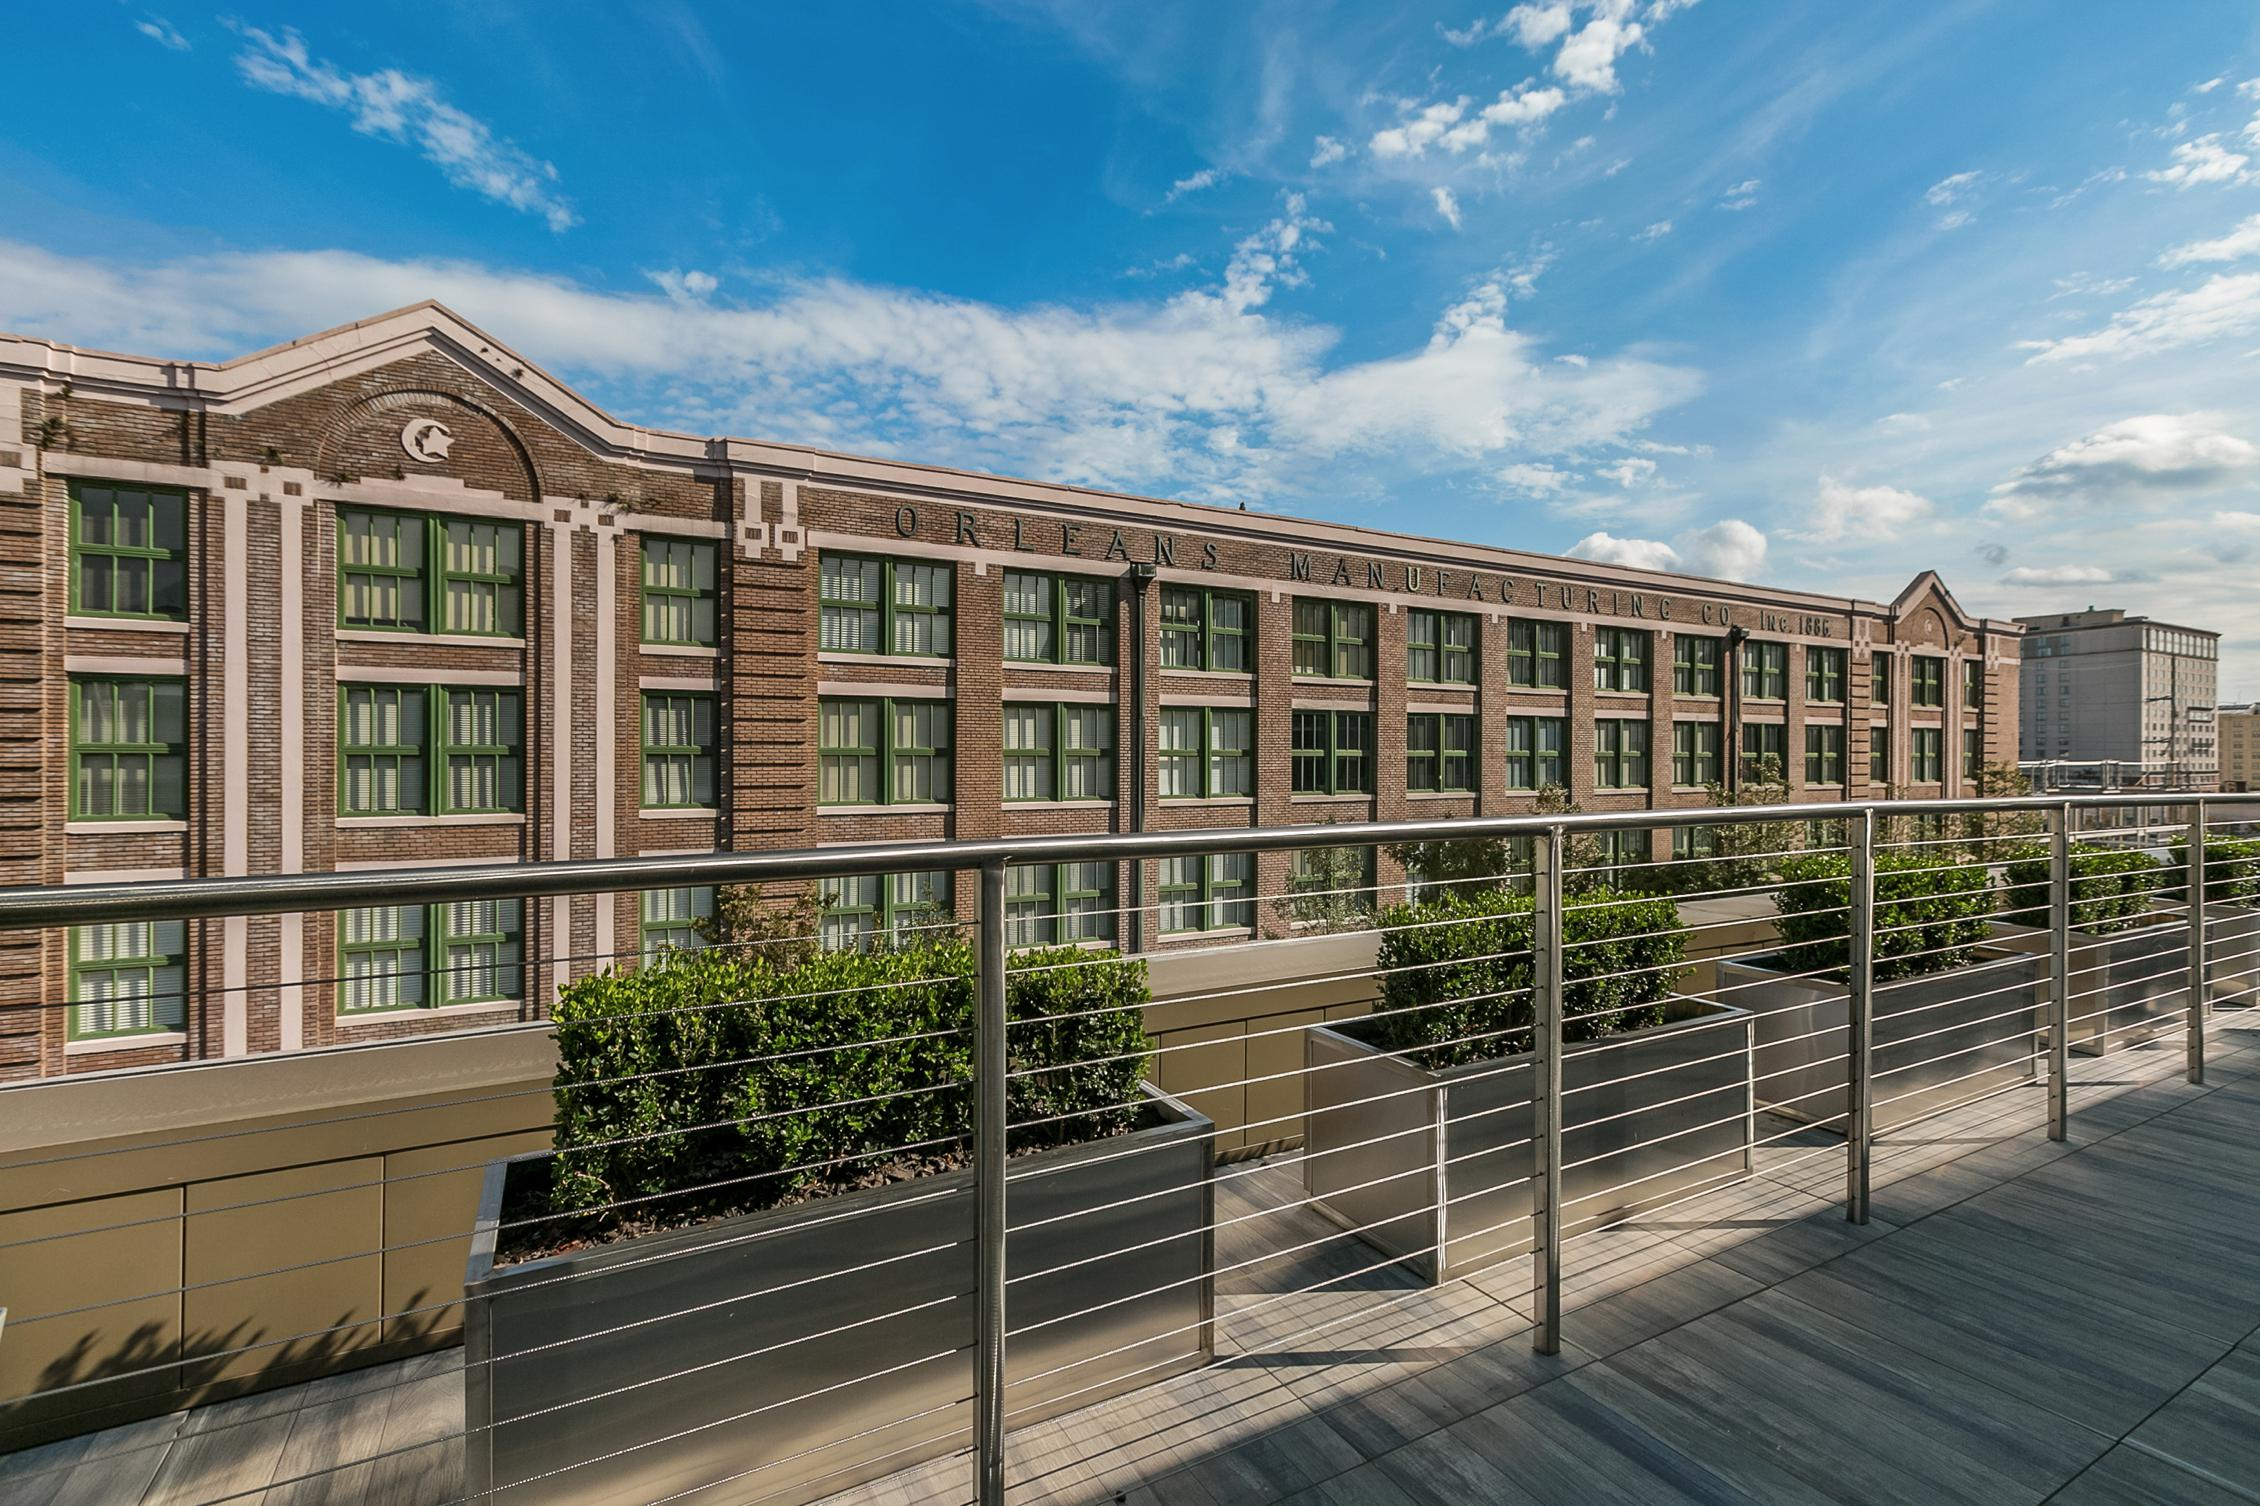 Refinery Orleans Properties 701 S. Peters New Orleans Condo for Sale New Orleans Penthouse 5